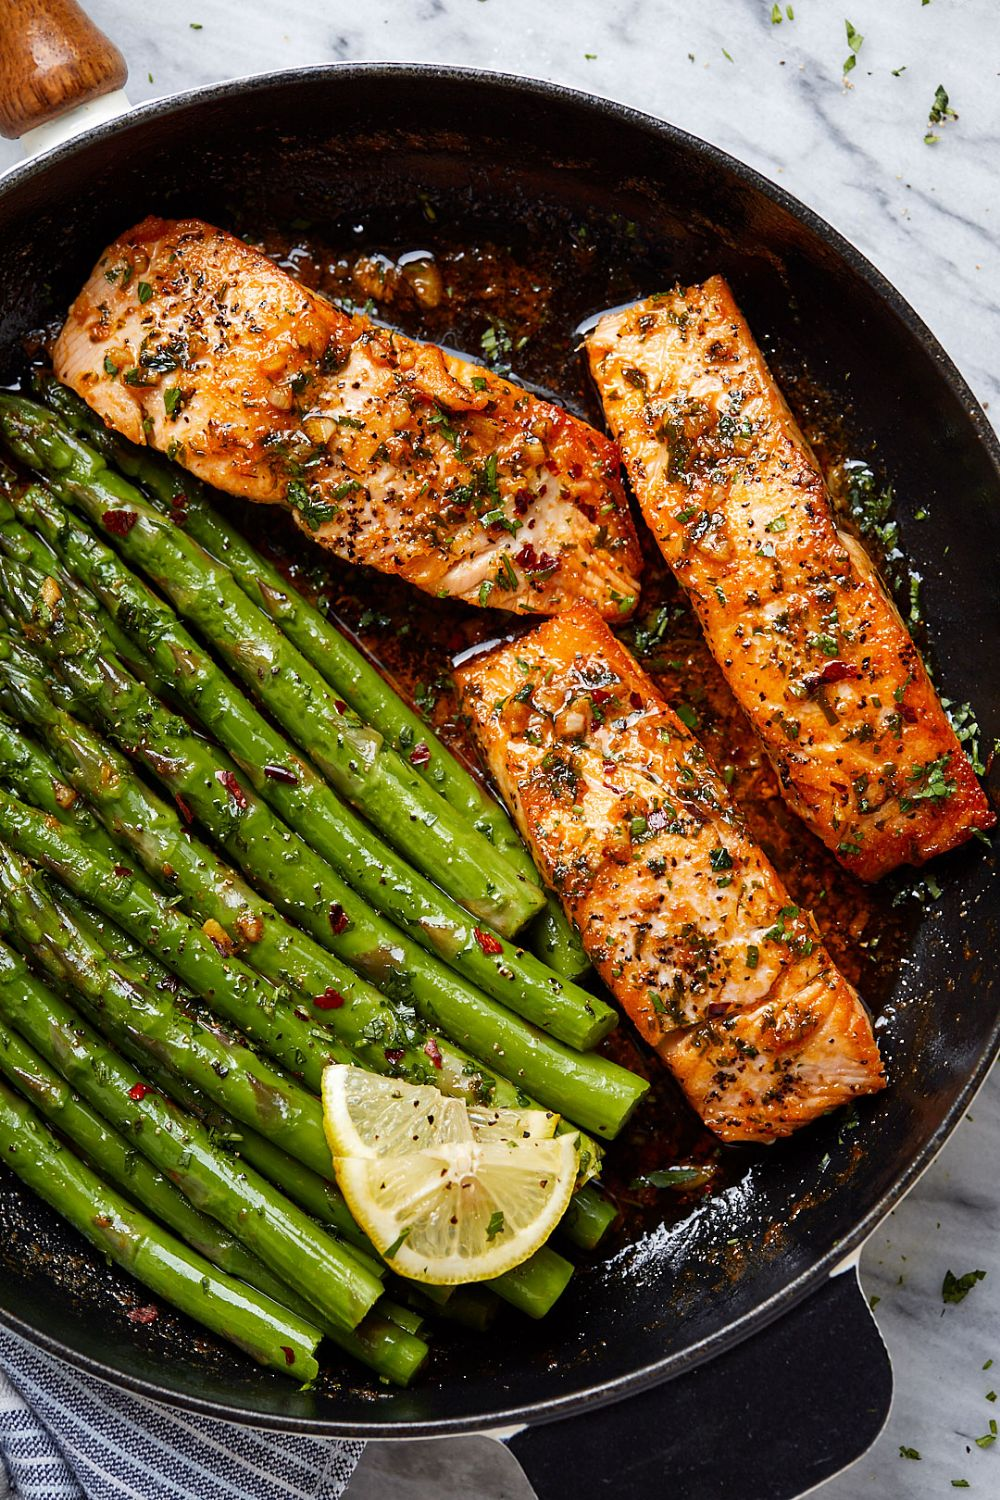 Garlic Butter Salmon with Lemon Asparagus Skillet - #salmon #asparagus #keto #recipe #eatwell101 - Healthy, tasty, simple and quick to cook, this salmon and asparagus recipe will have you enjoy a delicious and nutritious dinner. - #recipe by #eatwell101 #salmonrecipes